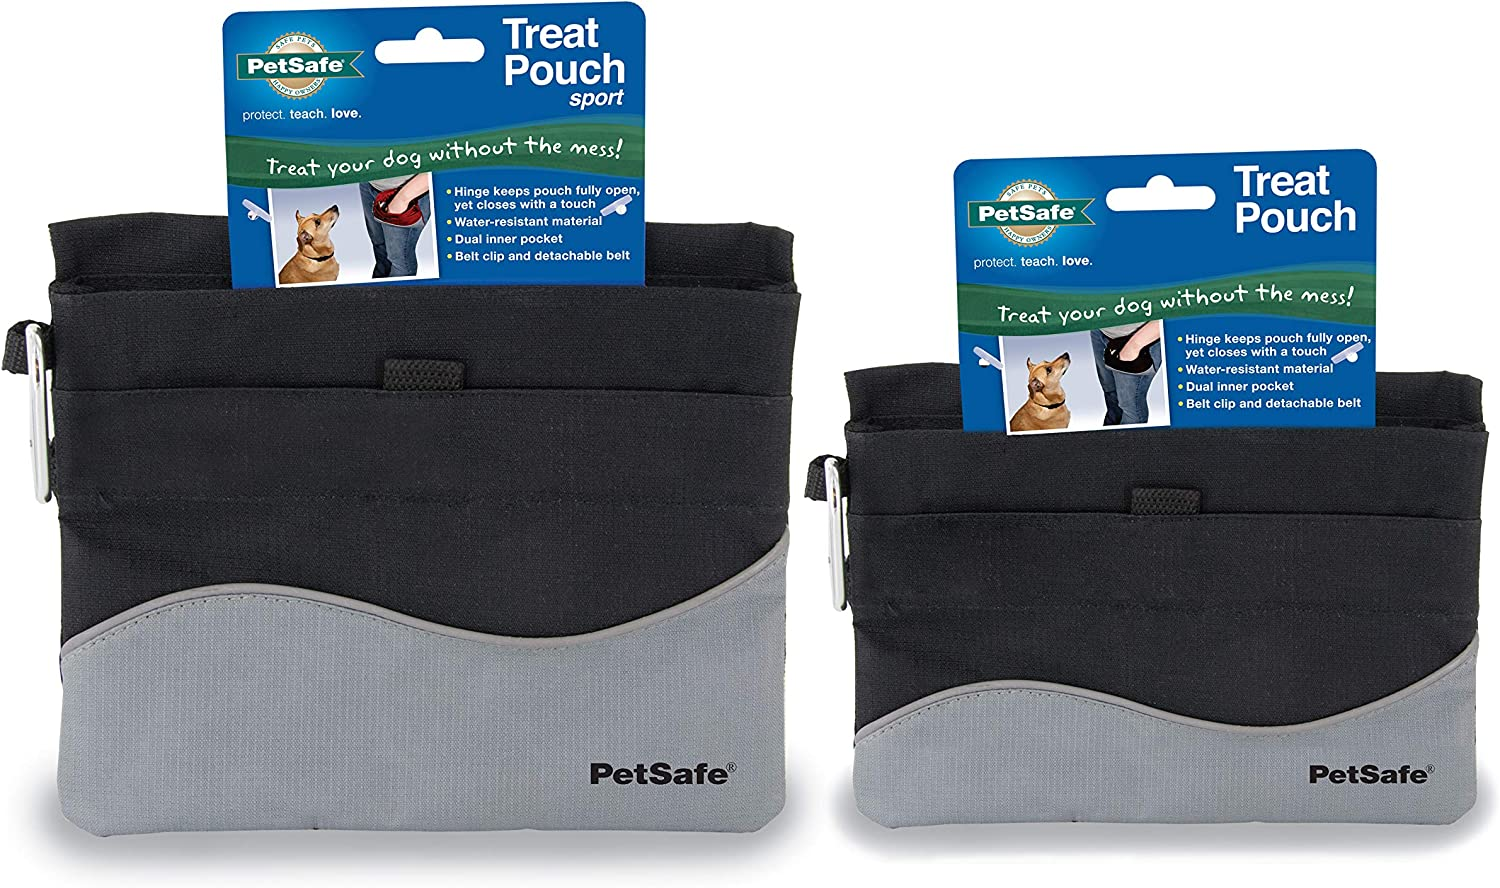 petsafe-treat-pouch